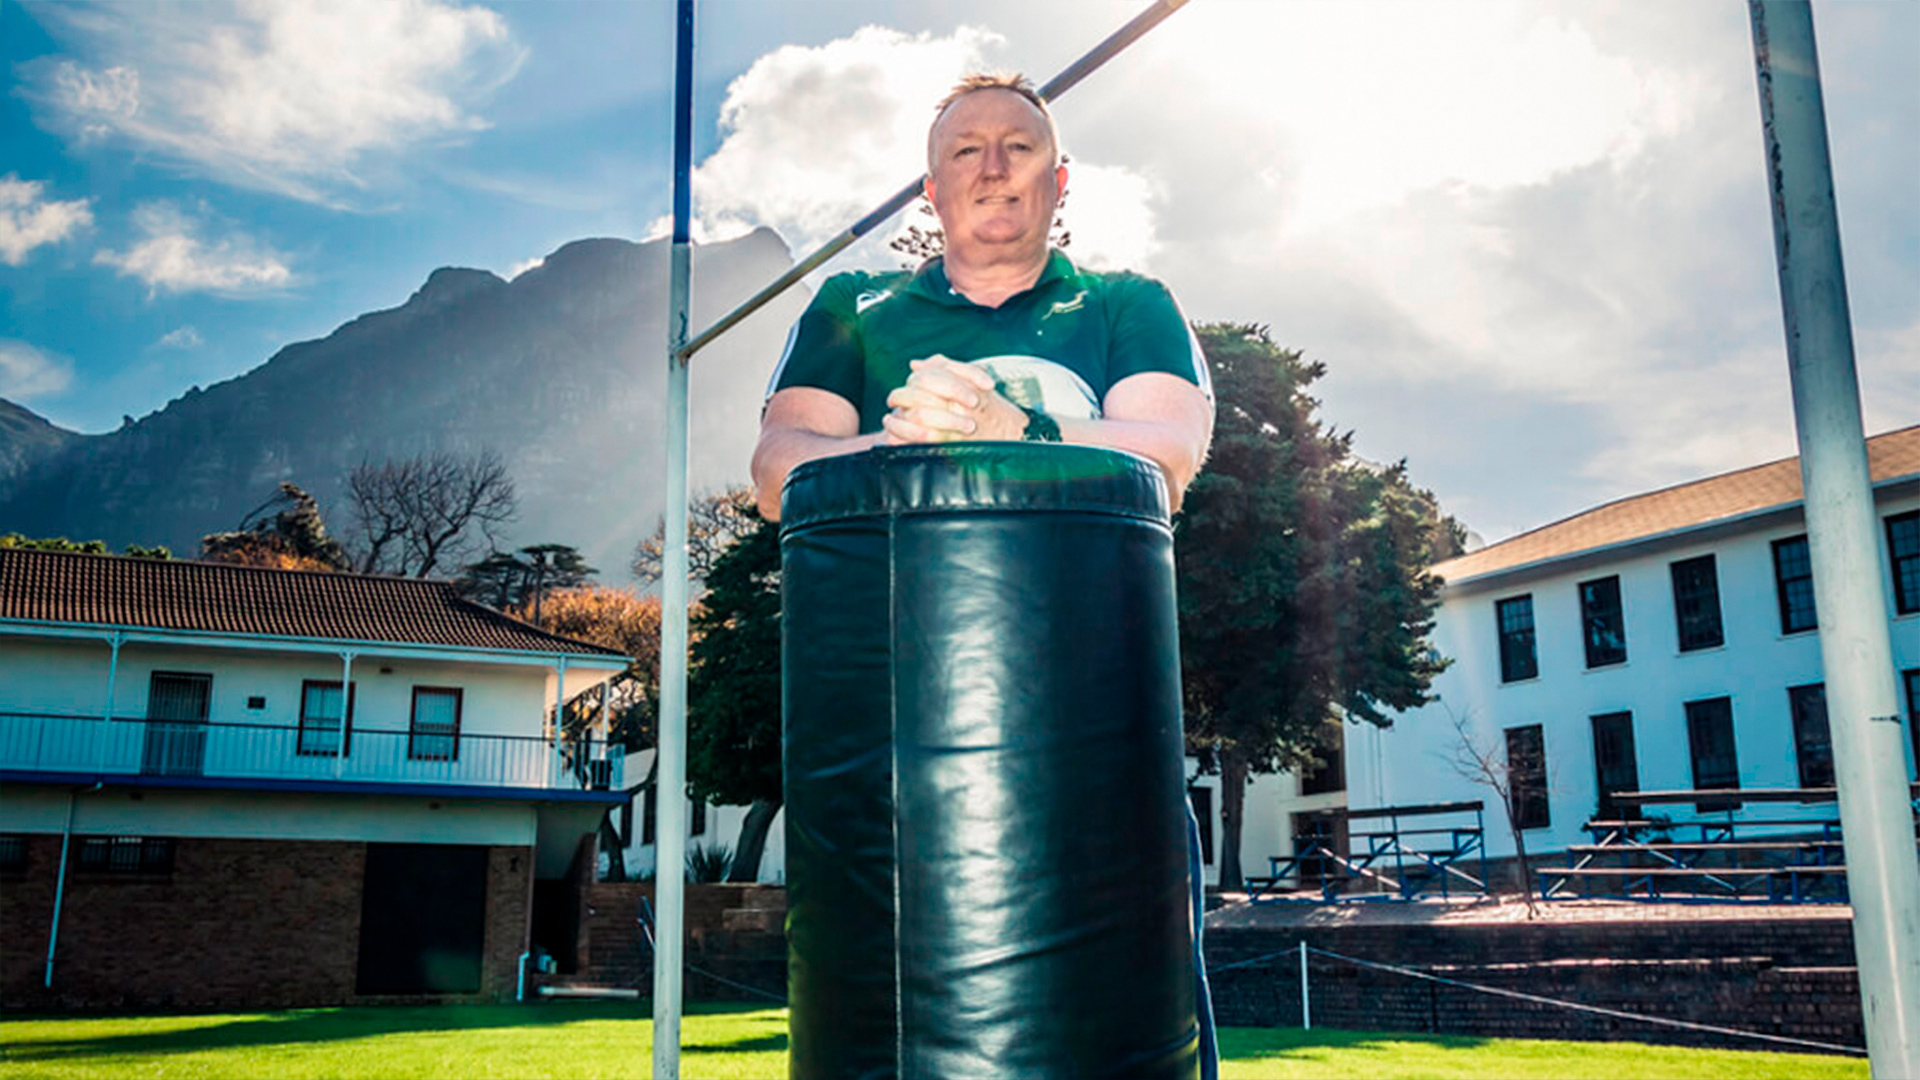 rugby player posing under posts